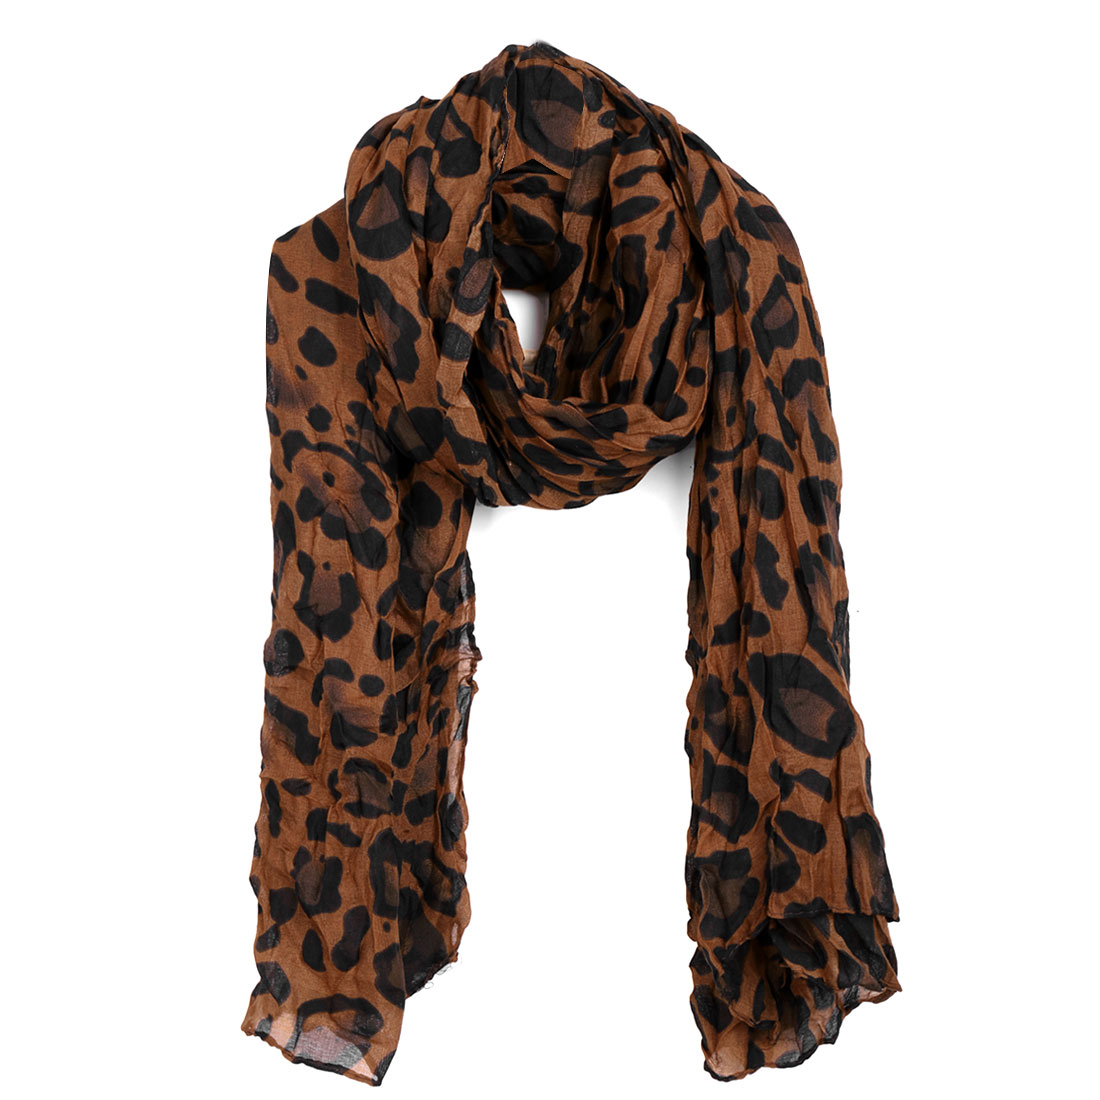 Women Pleated Fashionable Stylish Scarf Rust Black